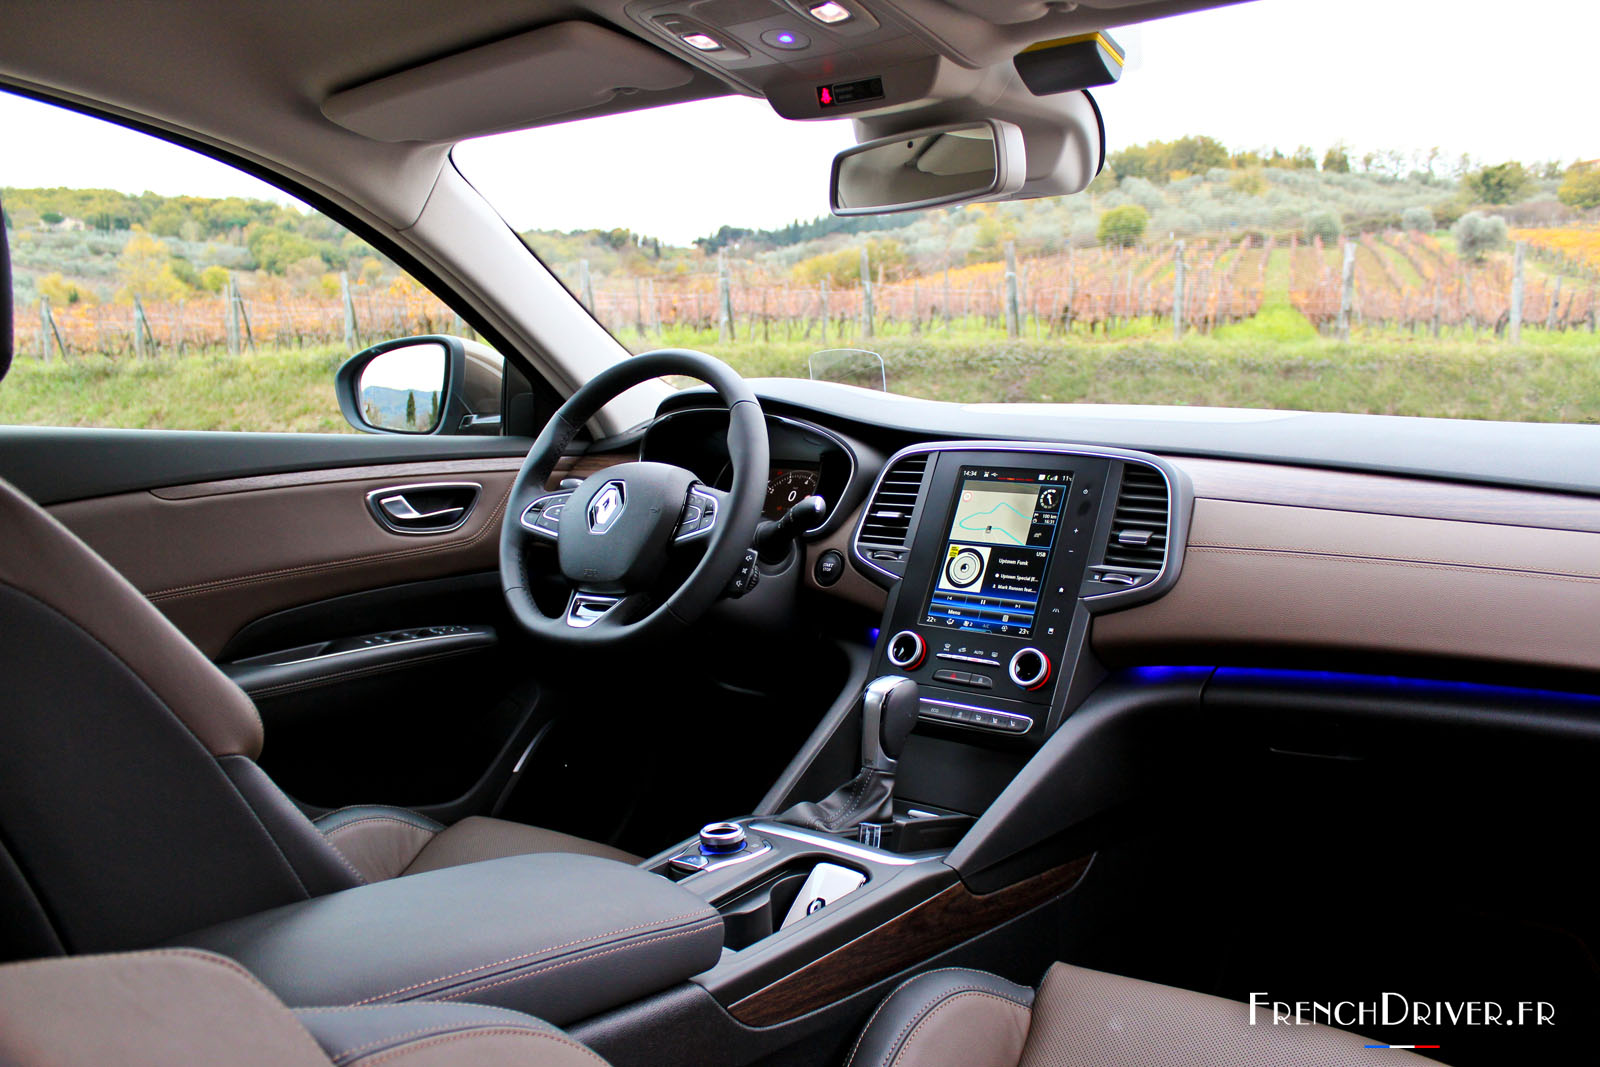 Essai de la renault talisman la berline porte bonheur for Photos interieur